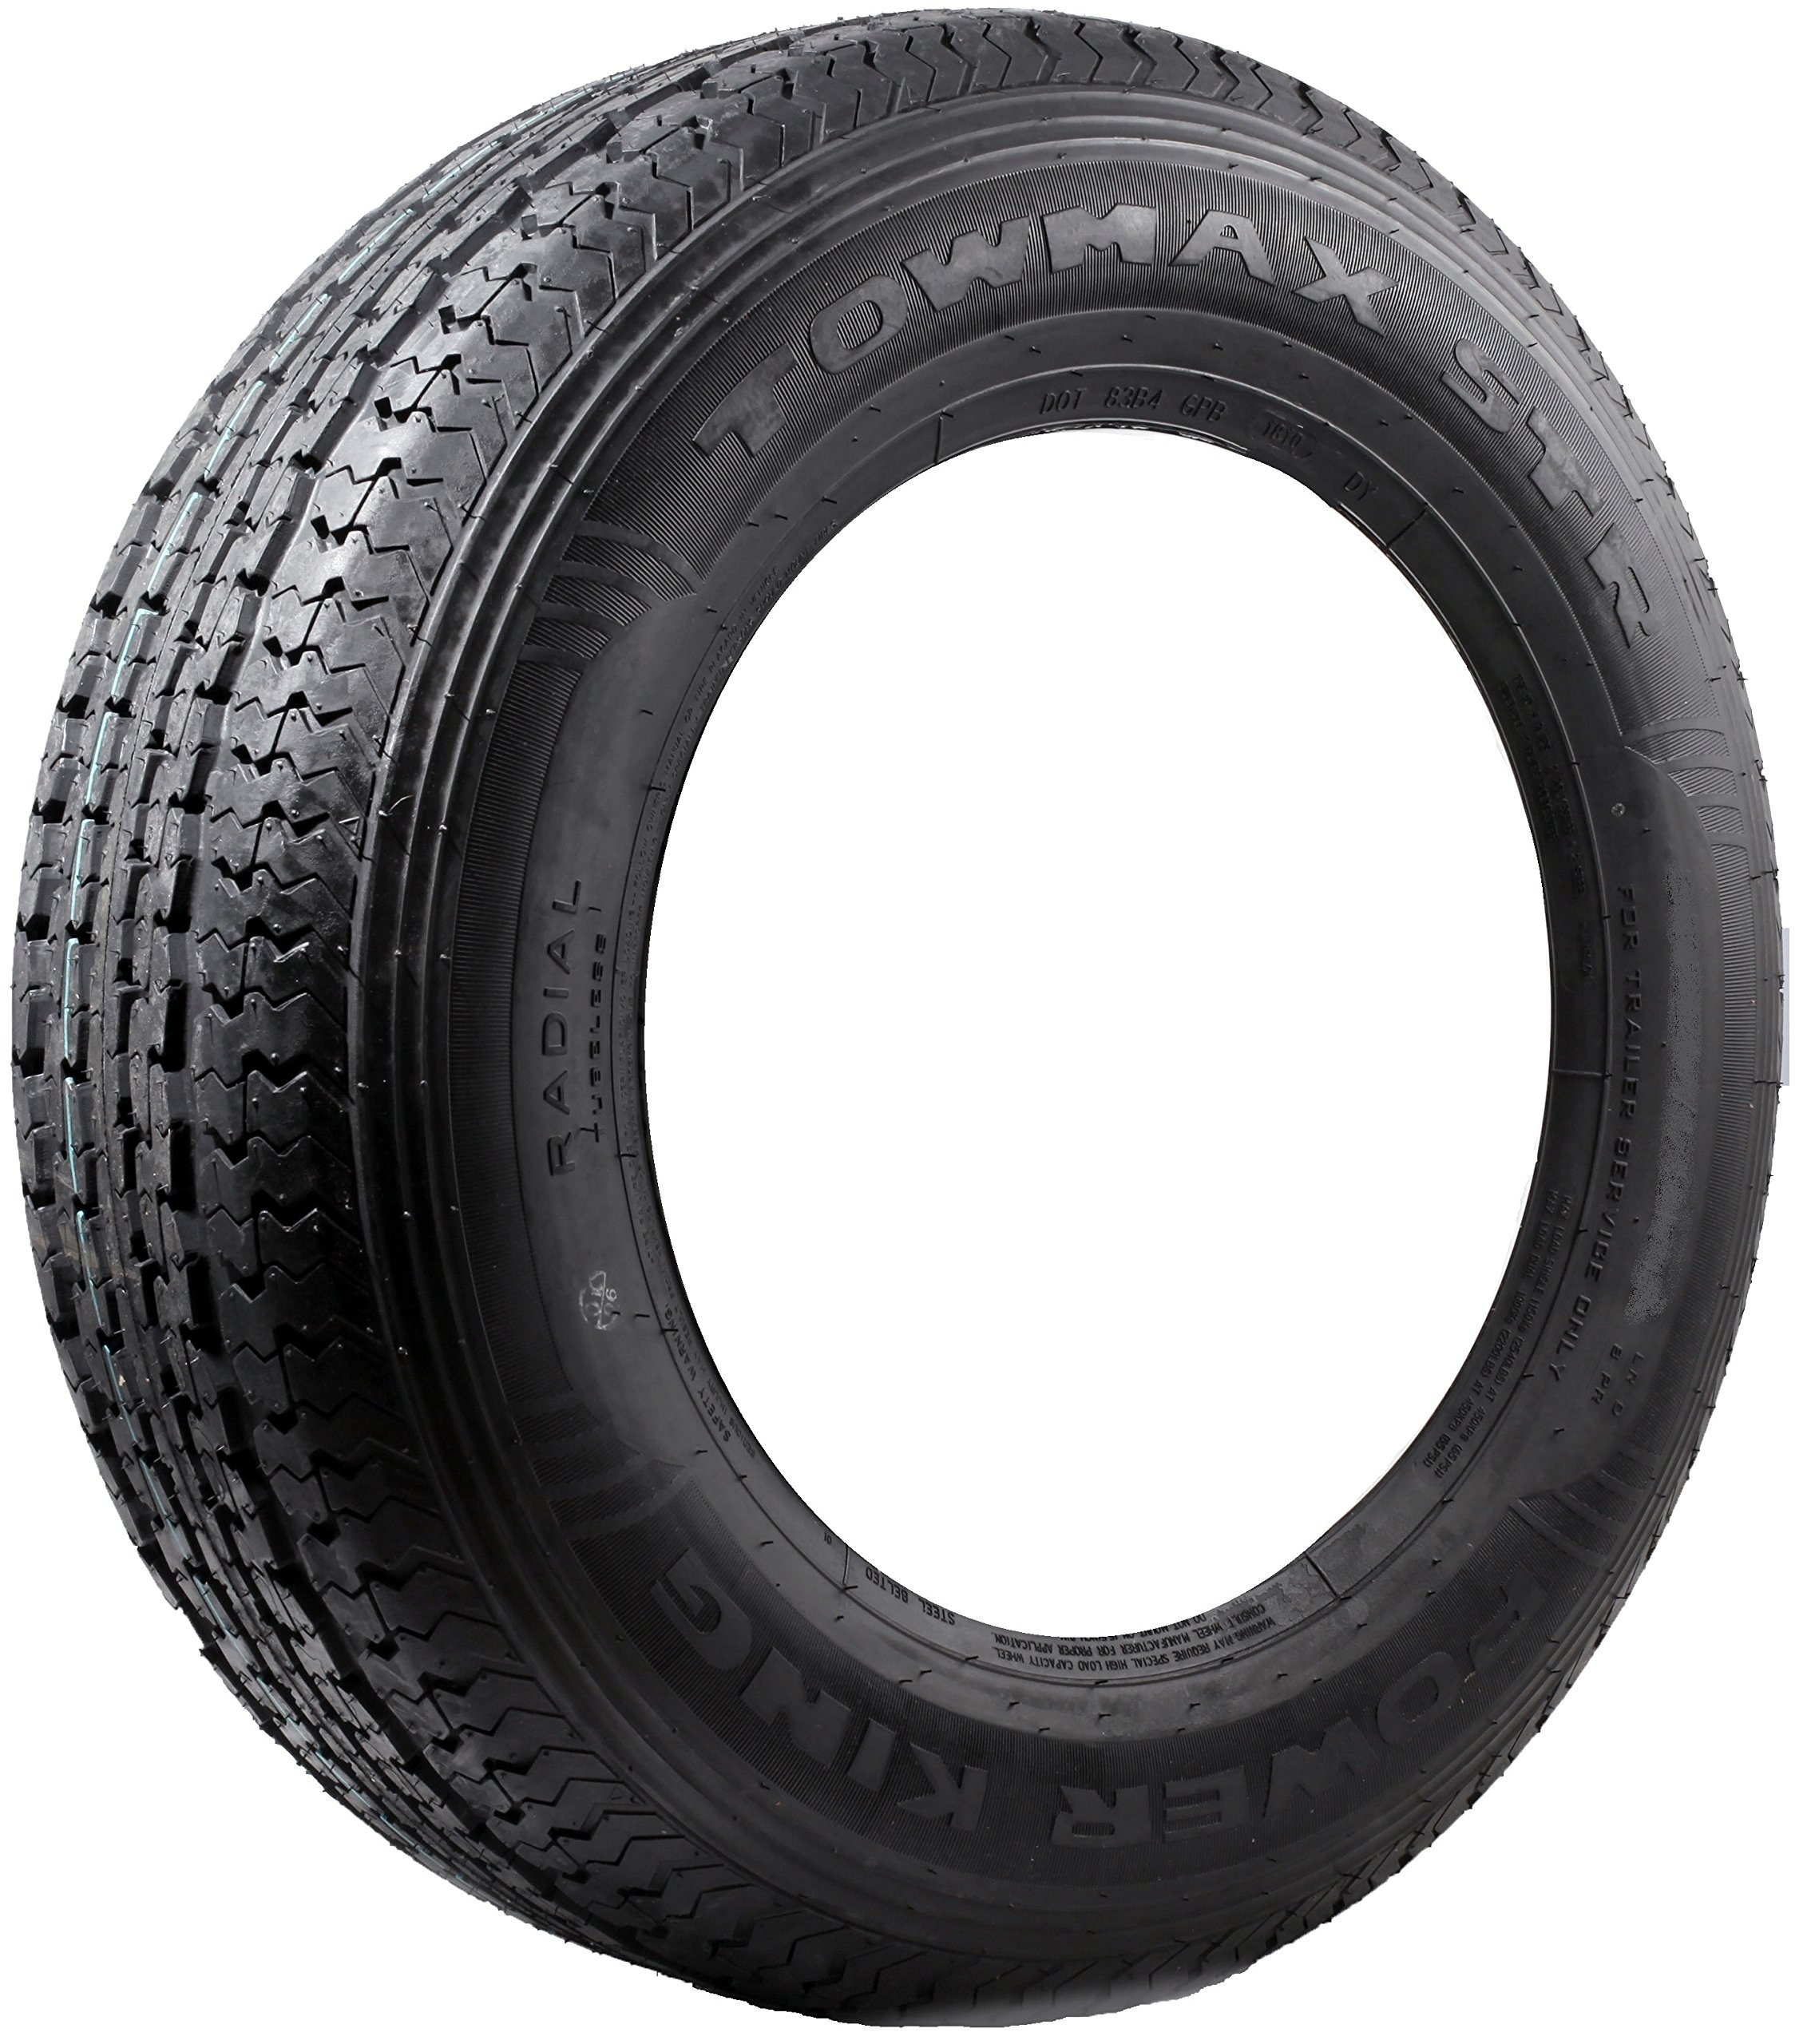 Set of 2 New ST 205/75R14 OSHION 6 Ply C Load Radial Trailer Tire - 100/96 L